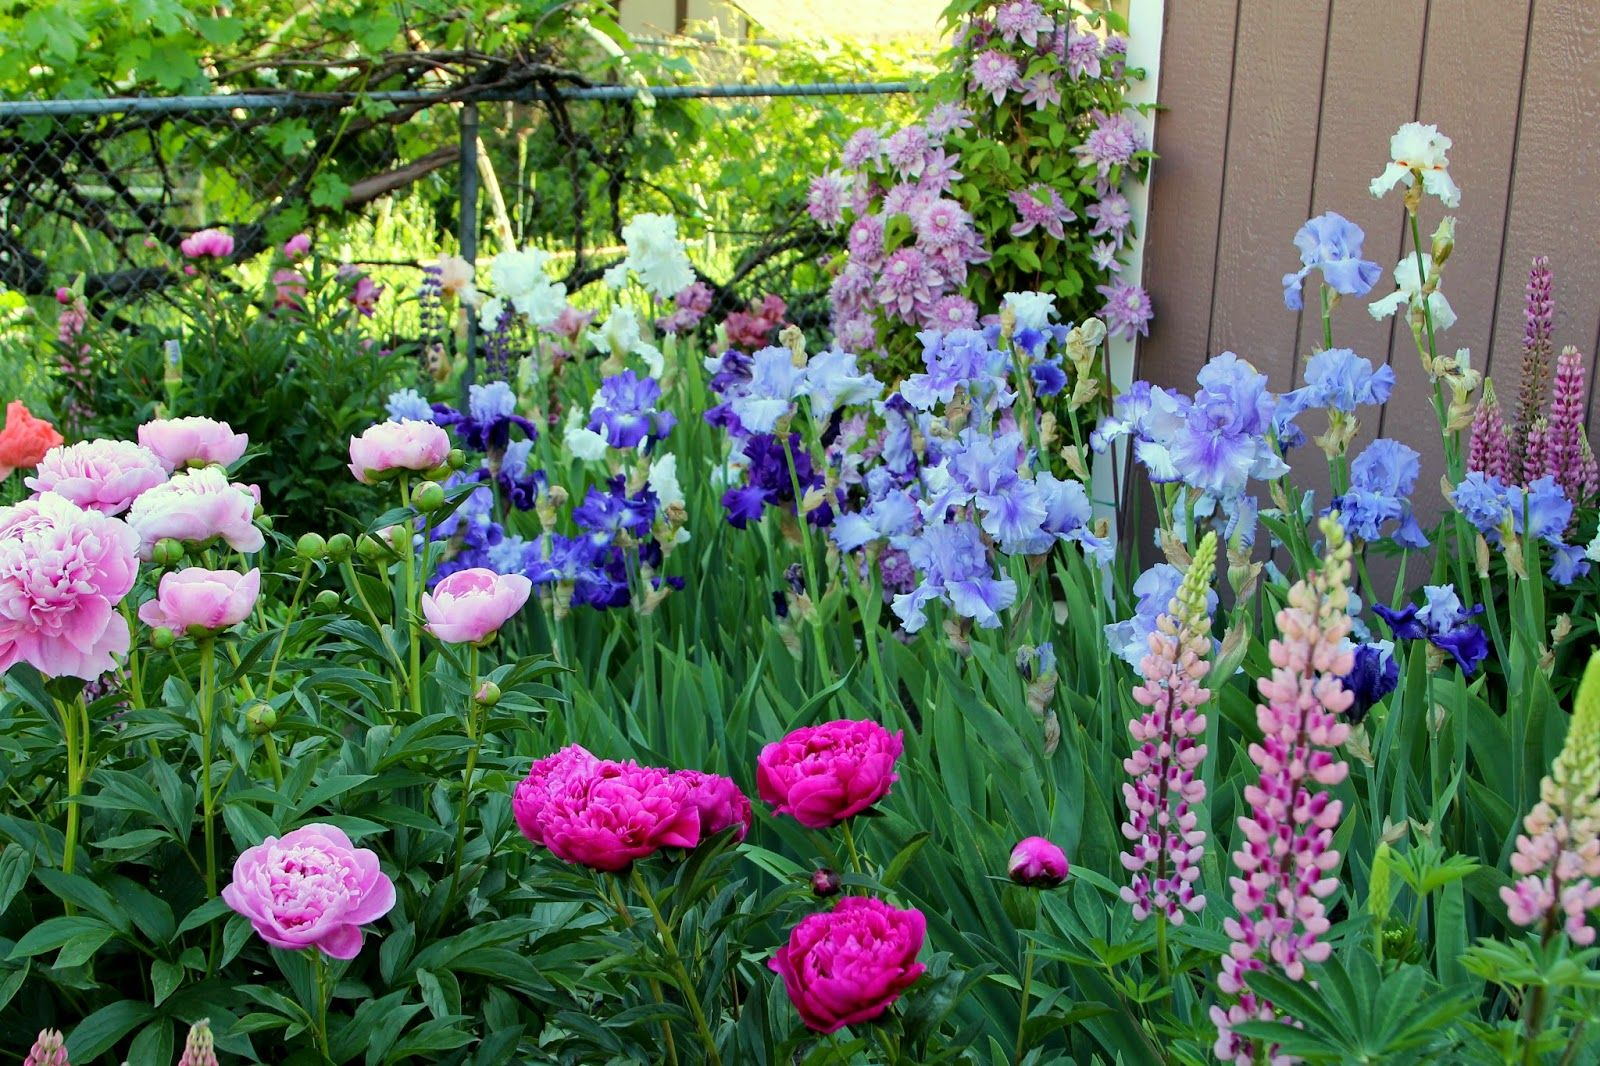 World of irises the blue iris garden planting a monochromatic world of irises the blue iris garden planting a monochromatic tall bearded iris bed izmirmasajfo